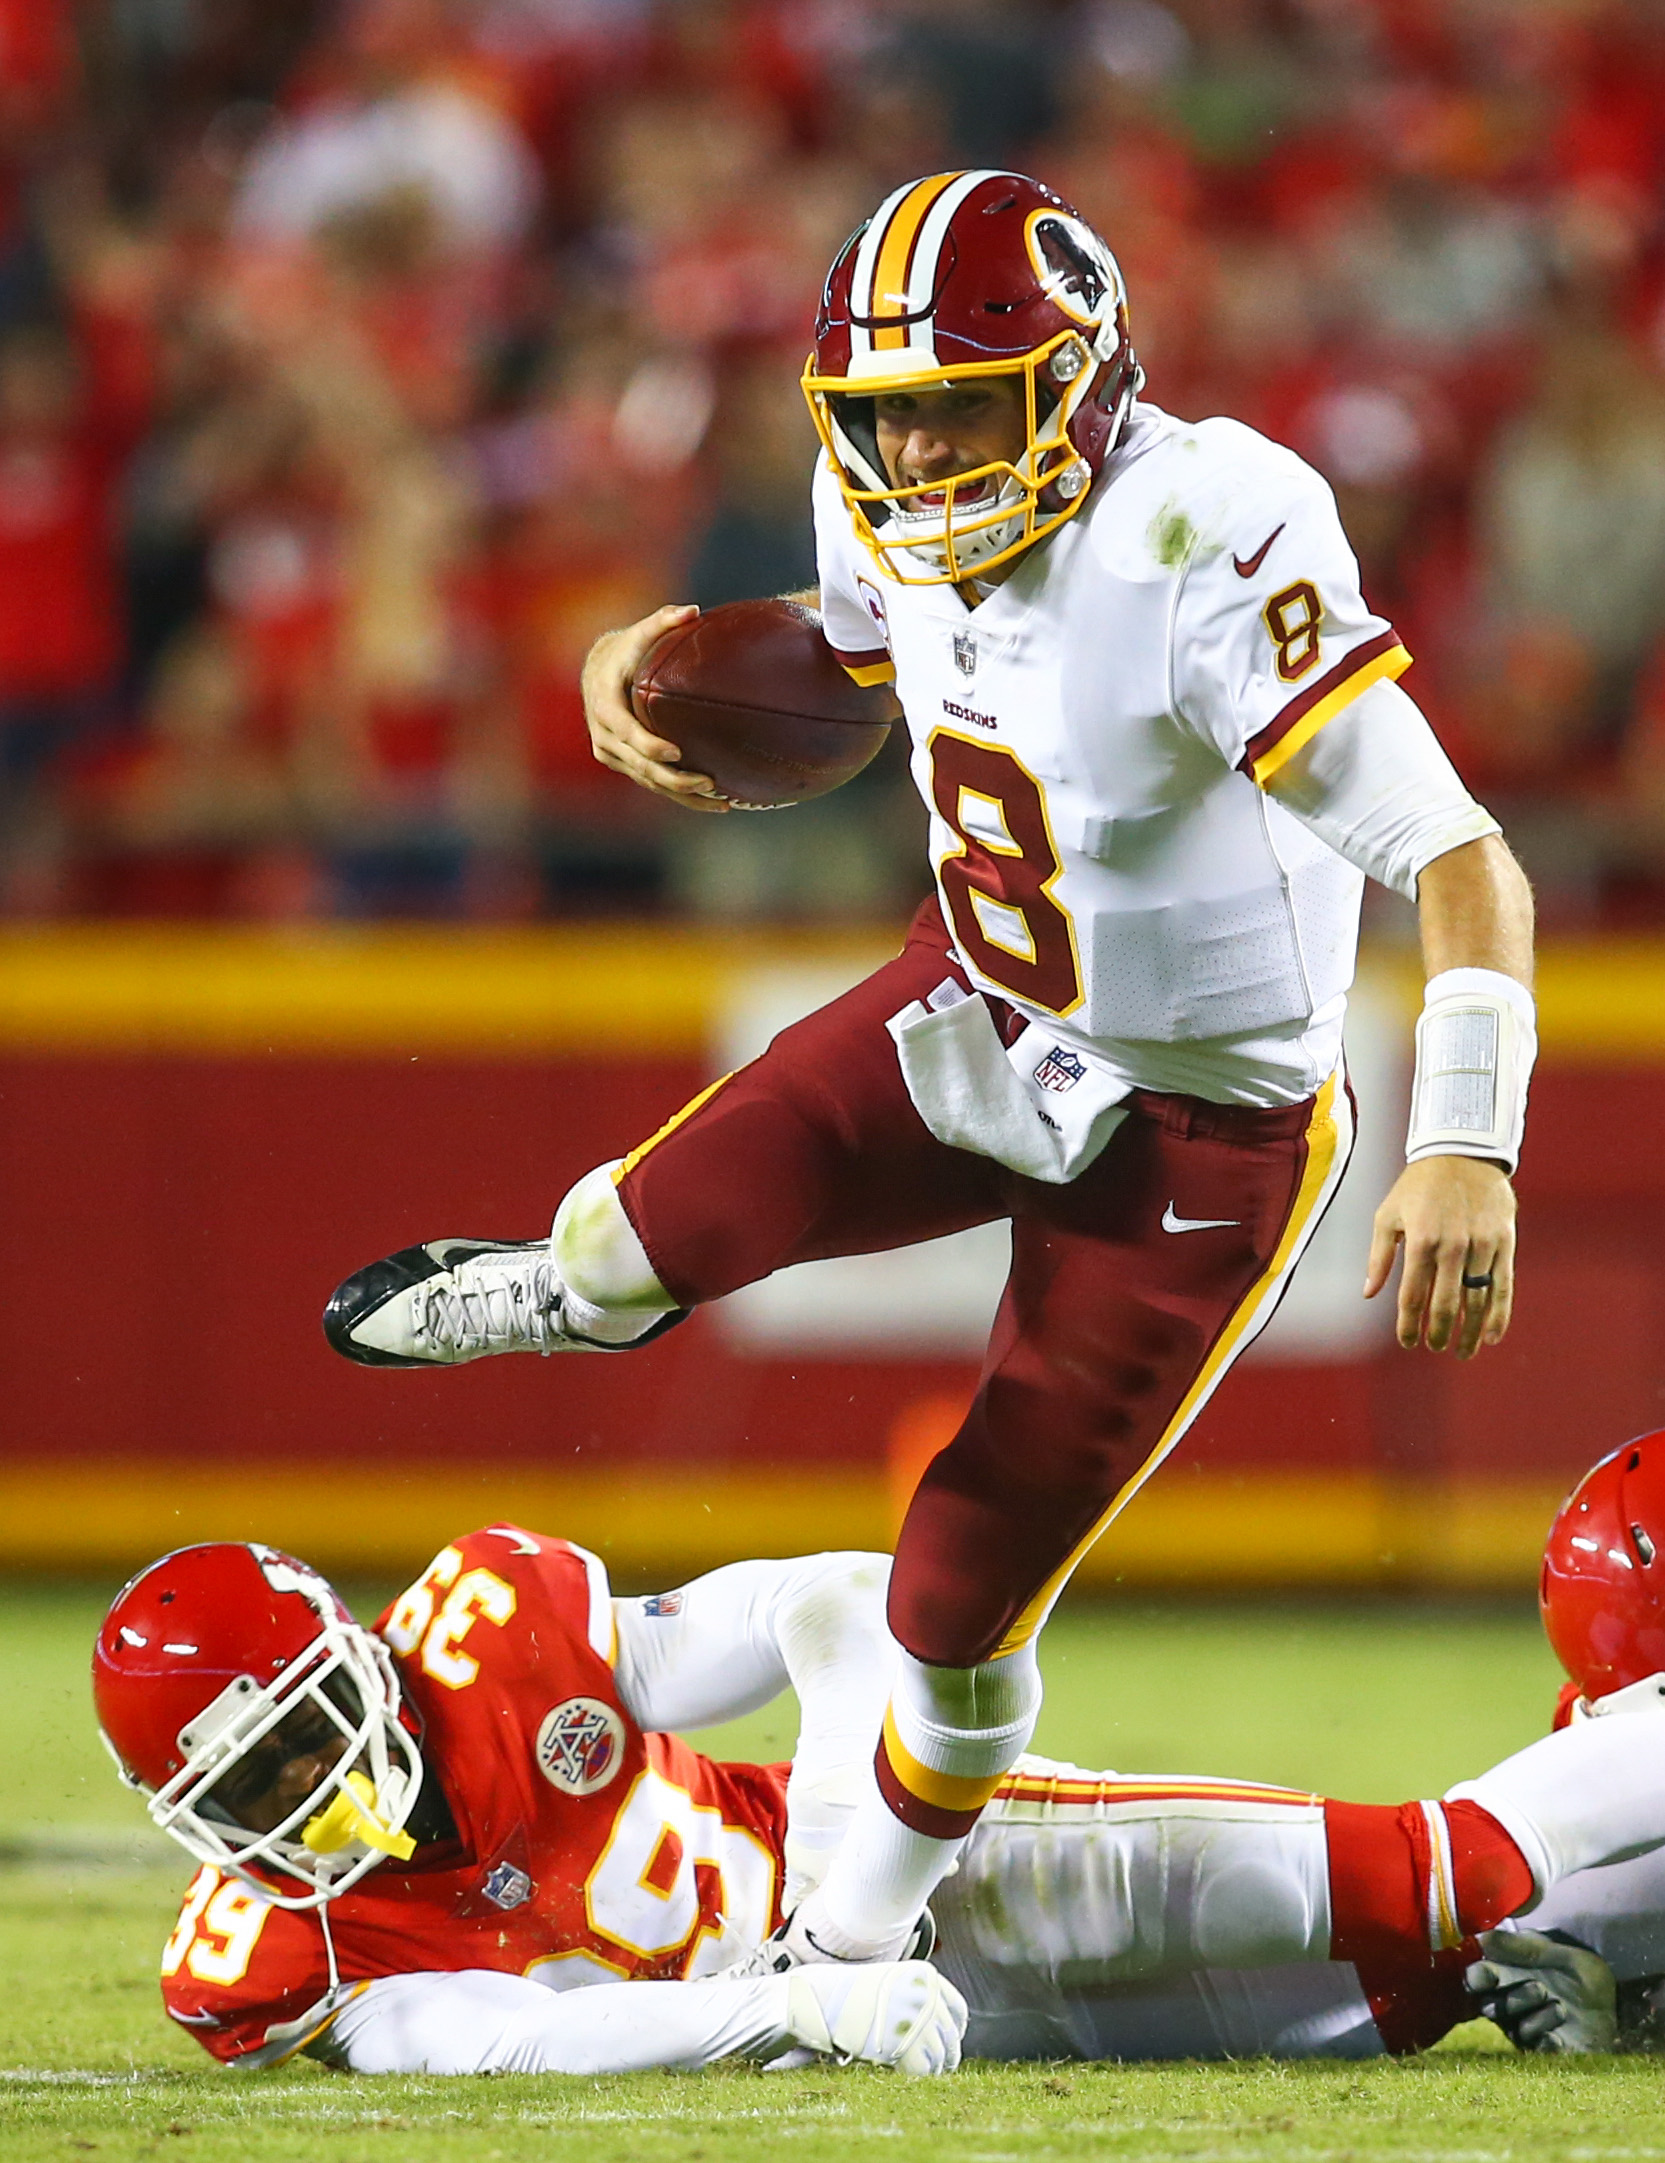 50763d358 Kirk Cousins, QB (Redskins): At long last, Kirk Cousins is headed towards  unrestricted free agency. You may or may not regard Cousins as a star, ...